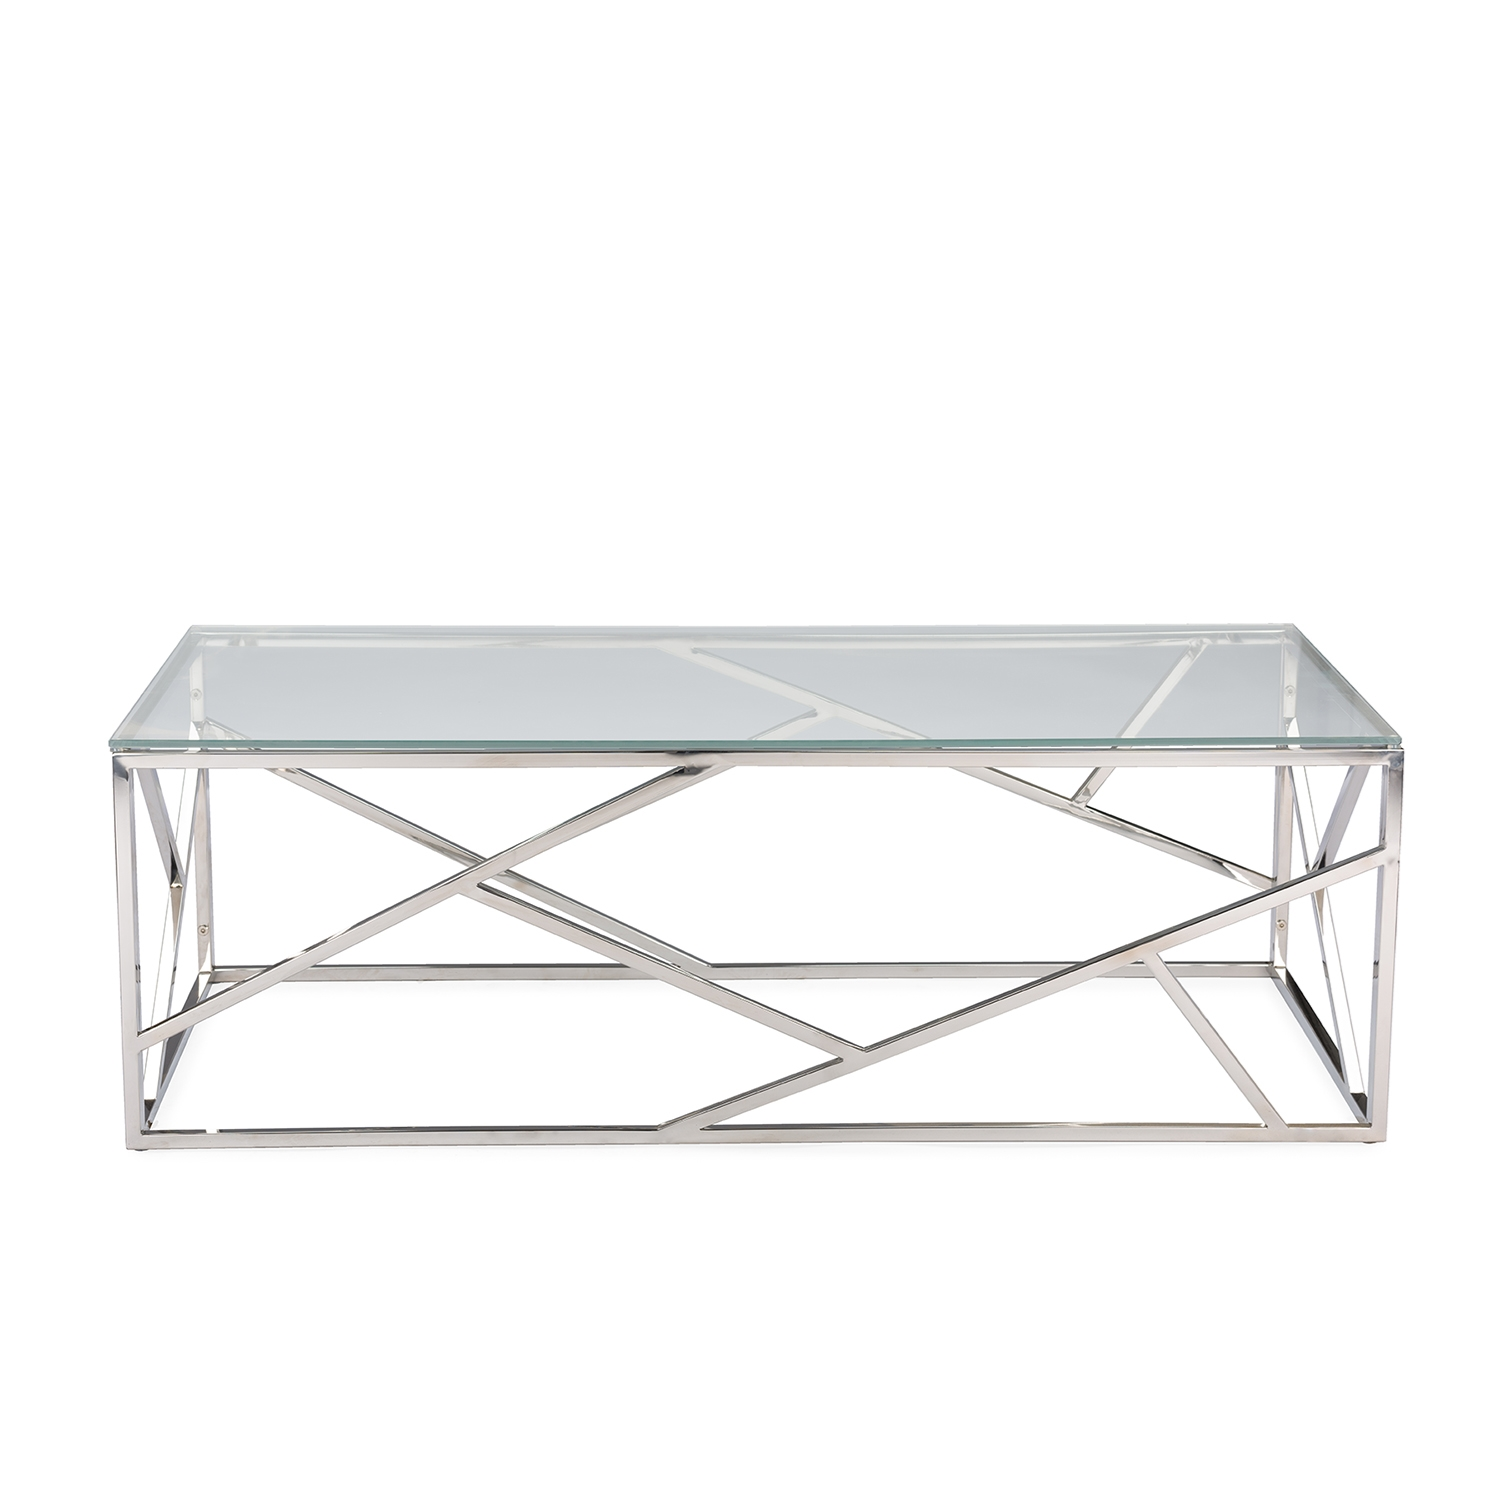 Exceptionnel Baxton Studio Fiona Modern And Contemporary Stainless Steel Coffee Table  With Tempered Glass Top | Affordable Modern Design | Baxton Studio